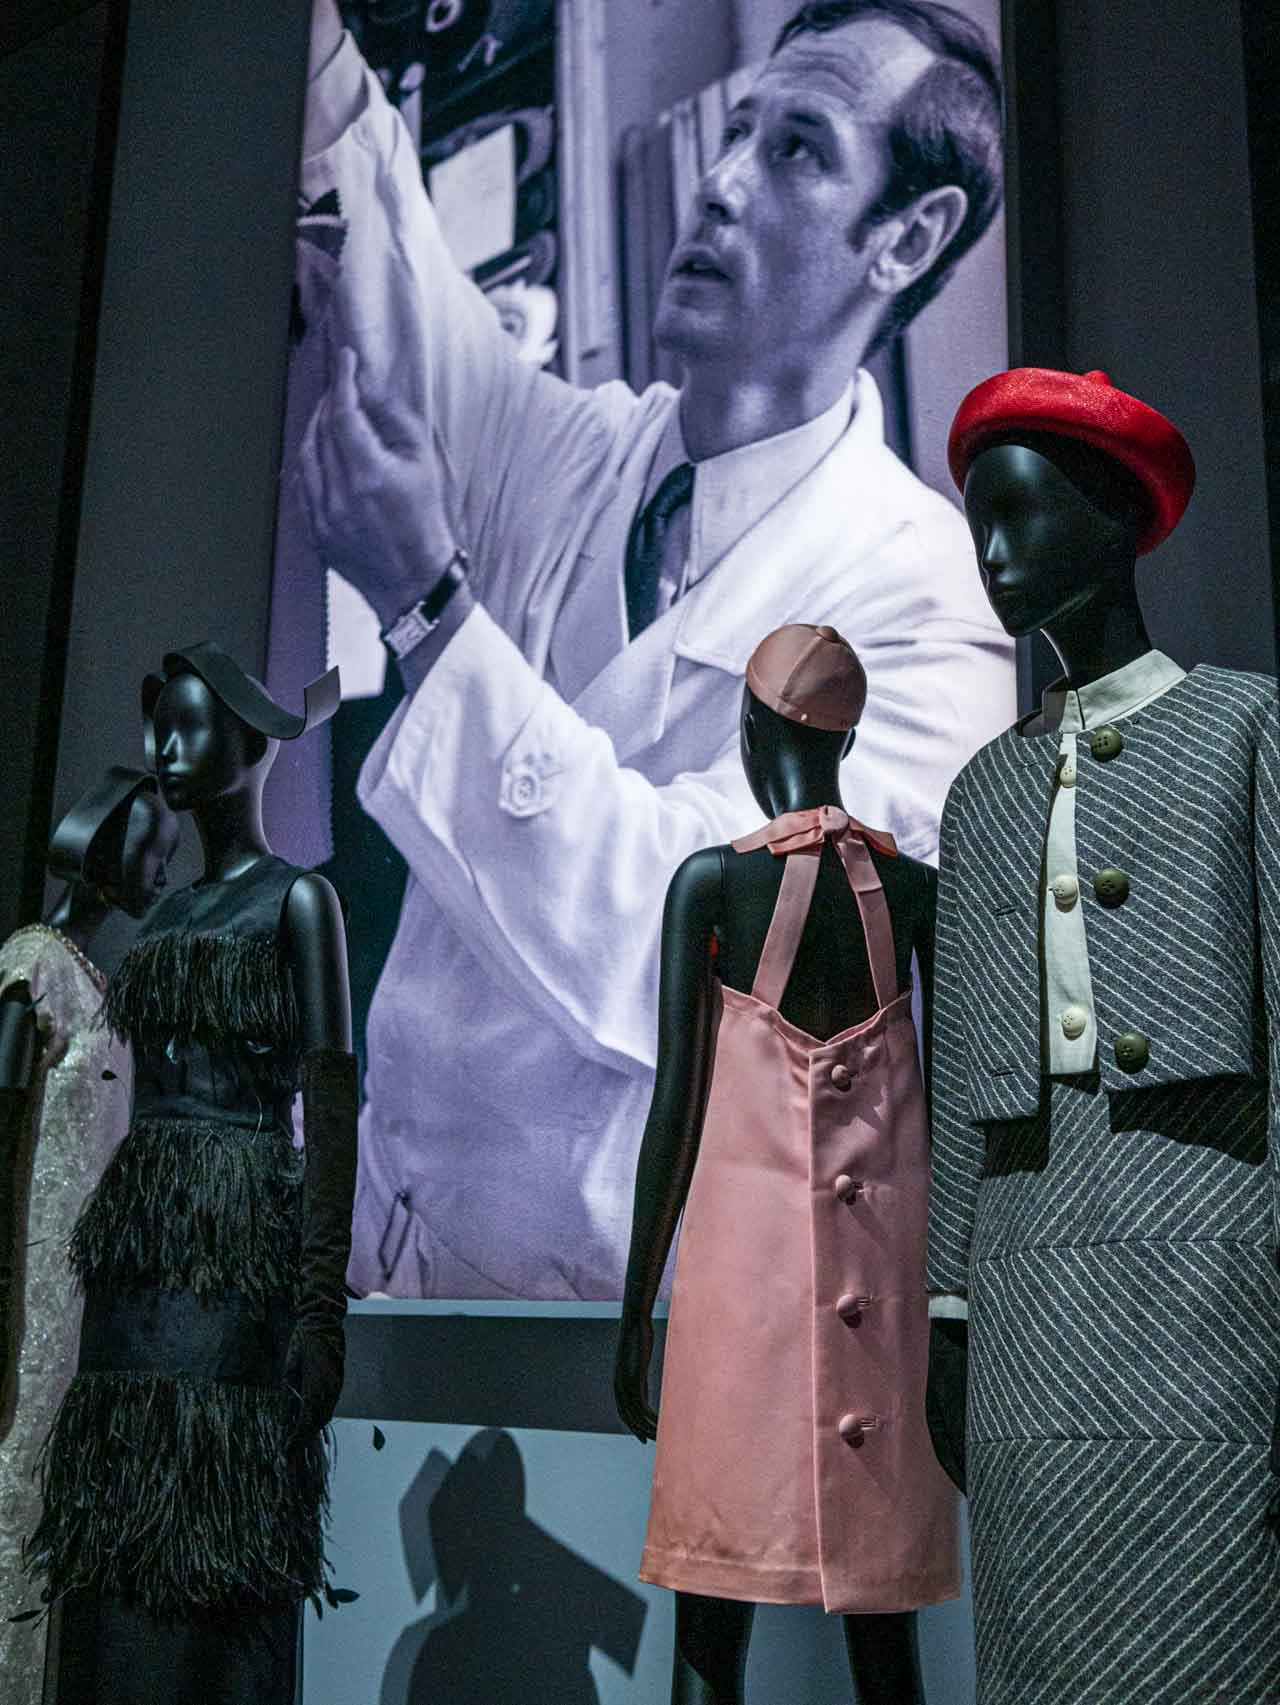 Designs by Marc Bohan for Christian Dior. Taken at the V&A exhibition © The Cutting Class, 2019.